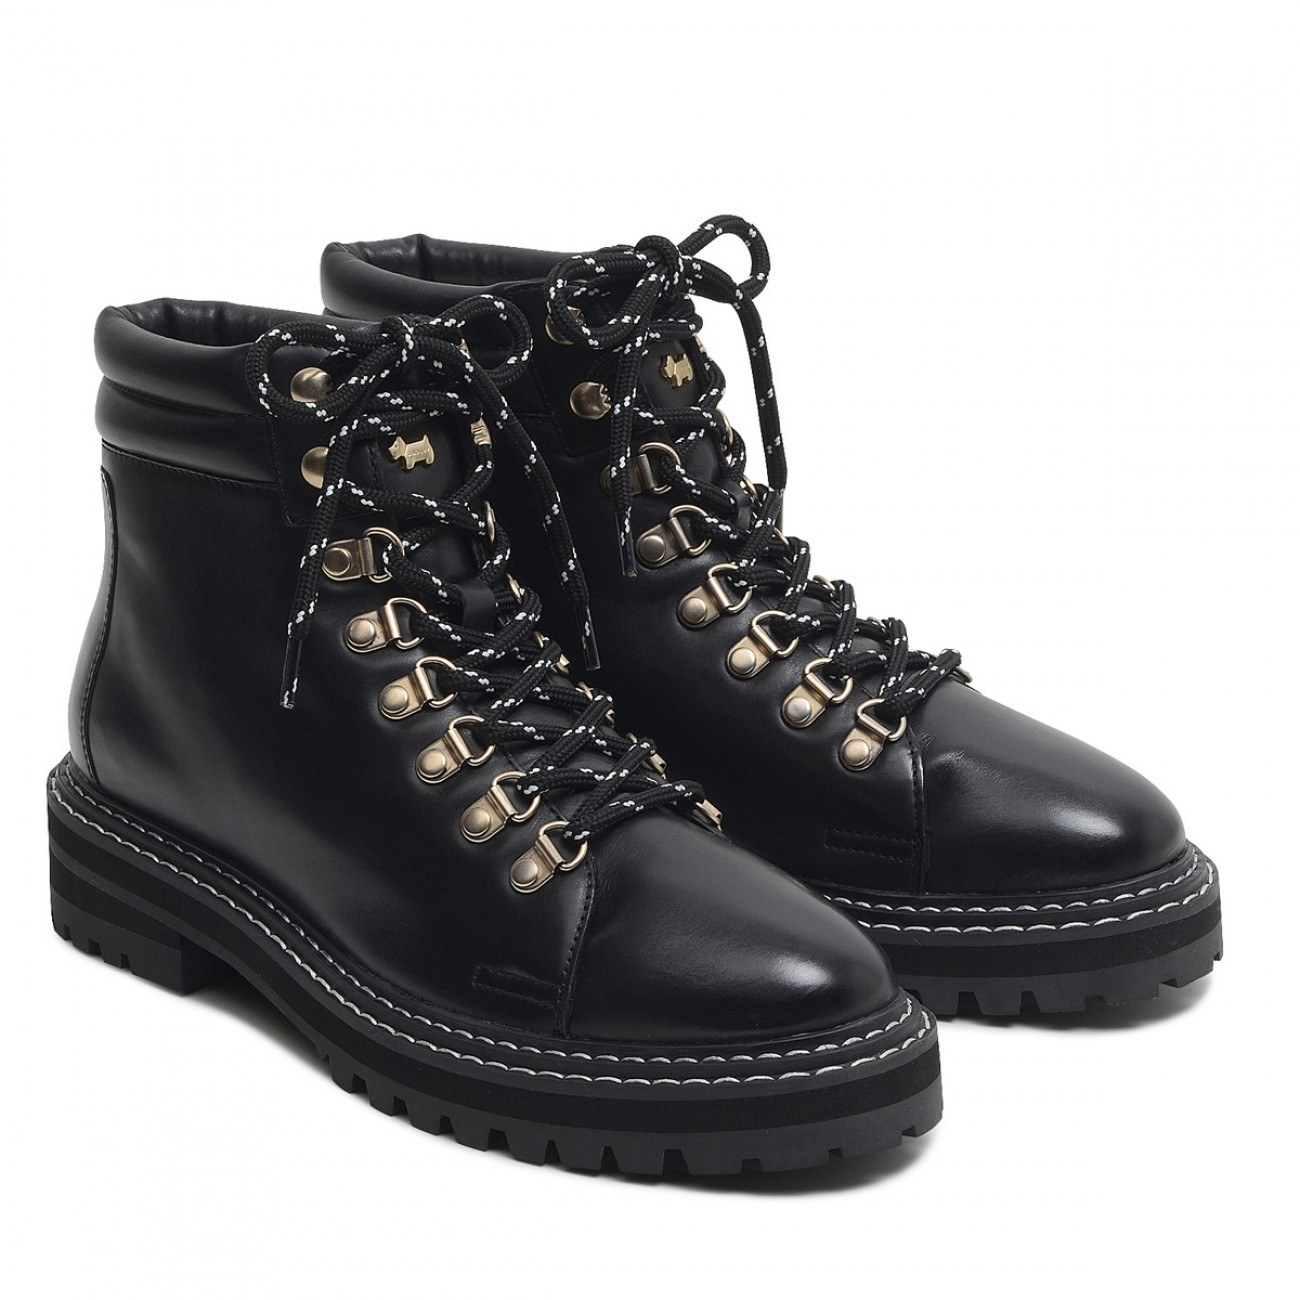 the lace-up boots in black